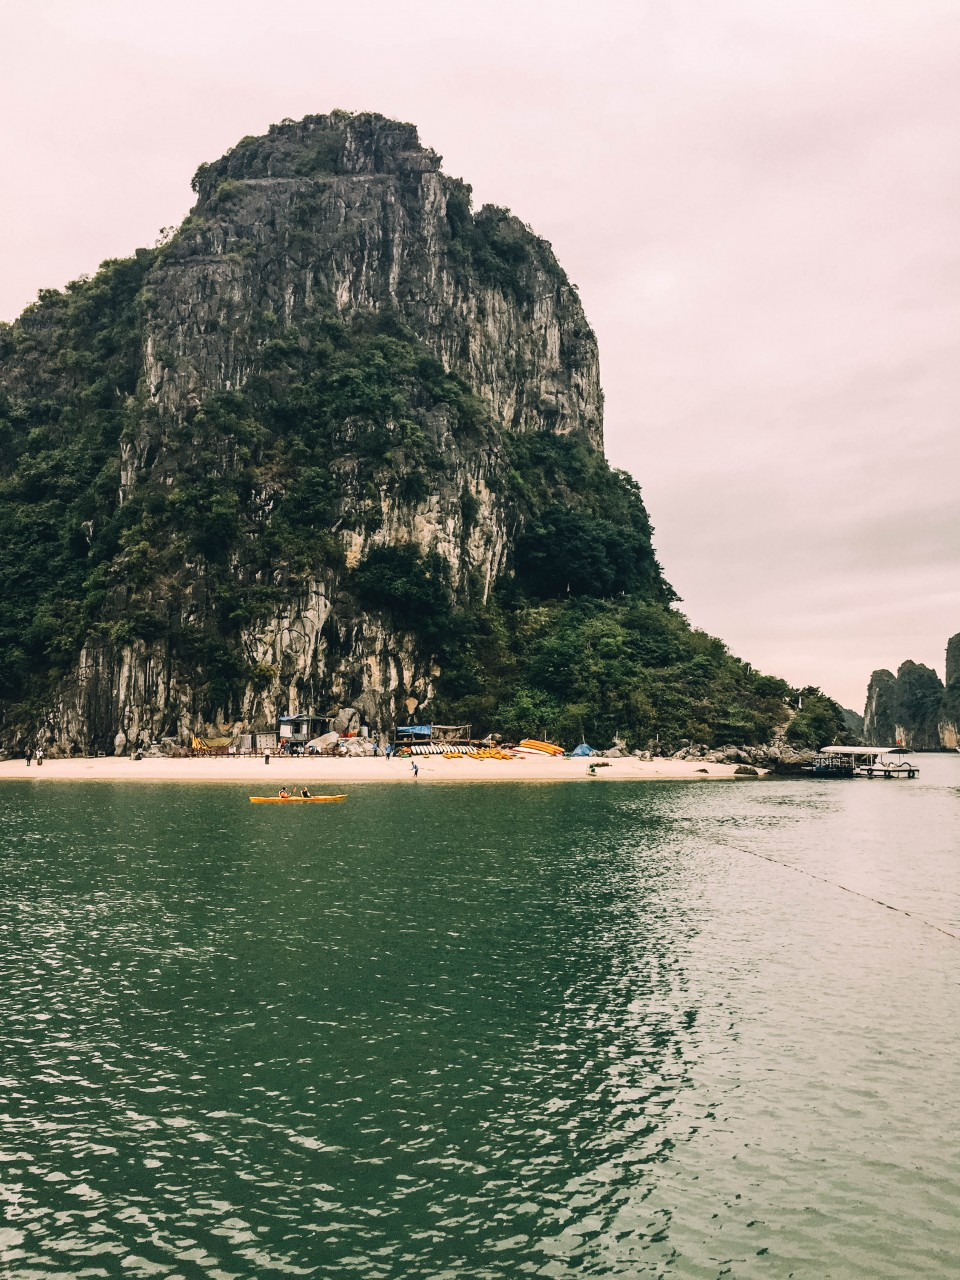 View of Thein Canh Son Cave in Halong Bay, Vietnam